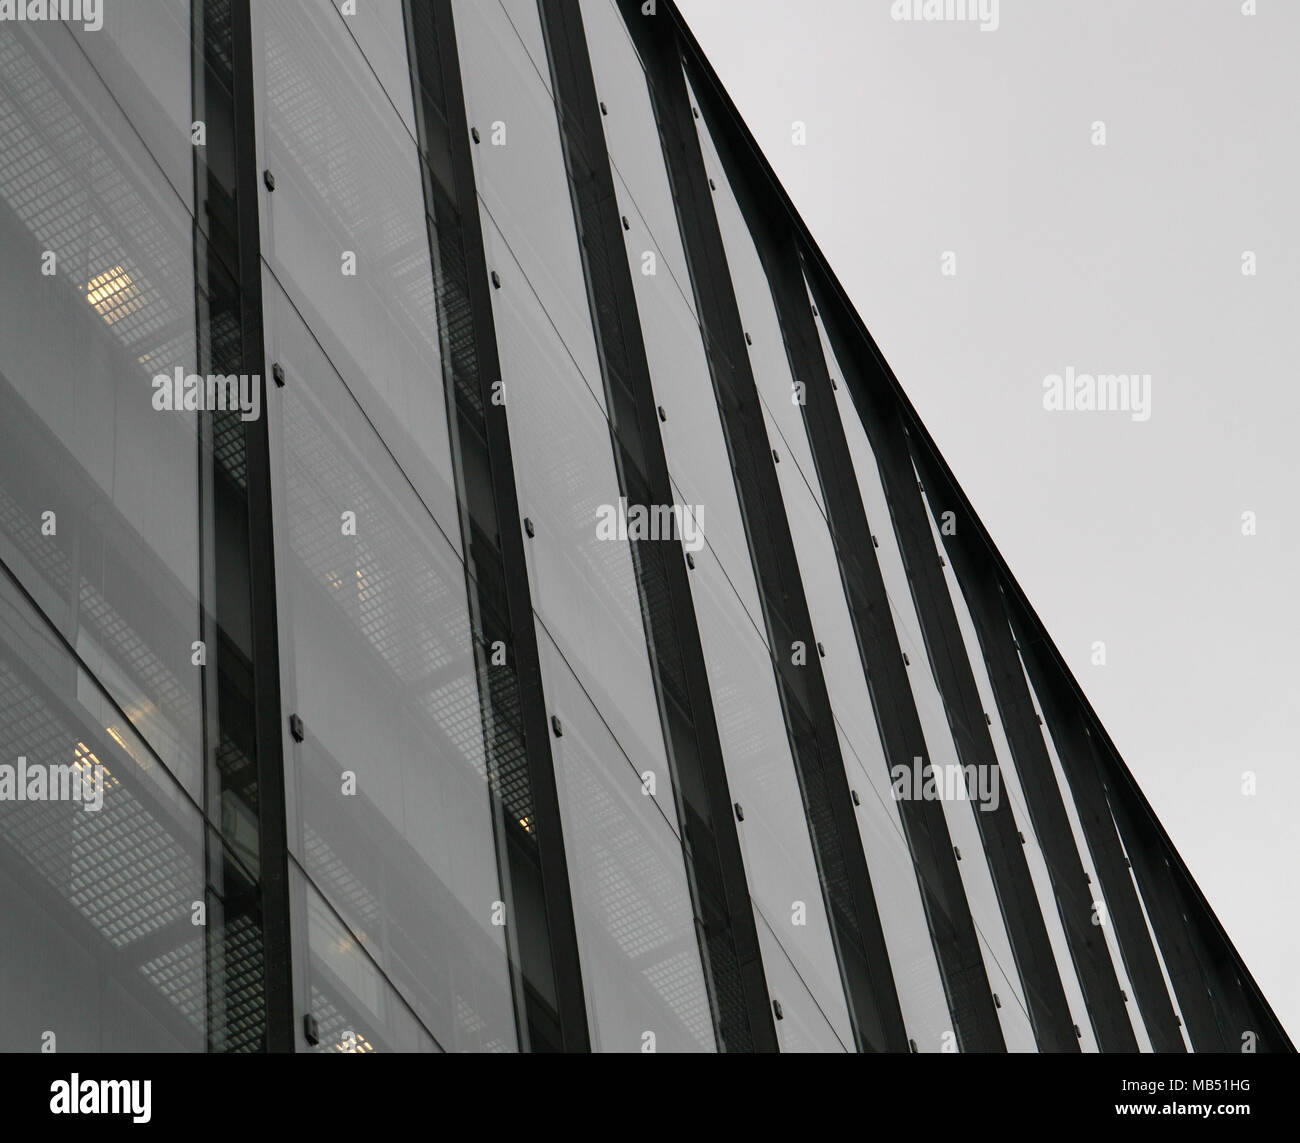 Glass and steel building facade on overcast sky - Stock Image